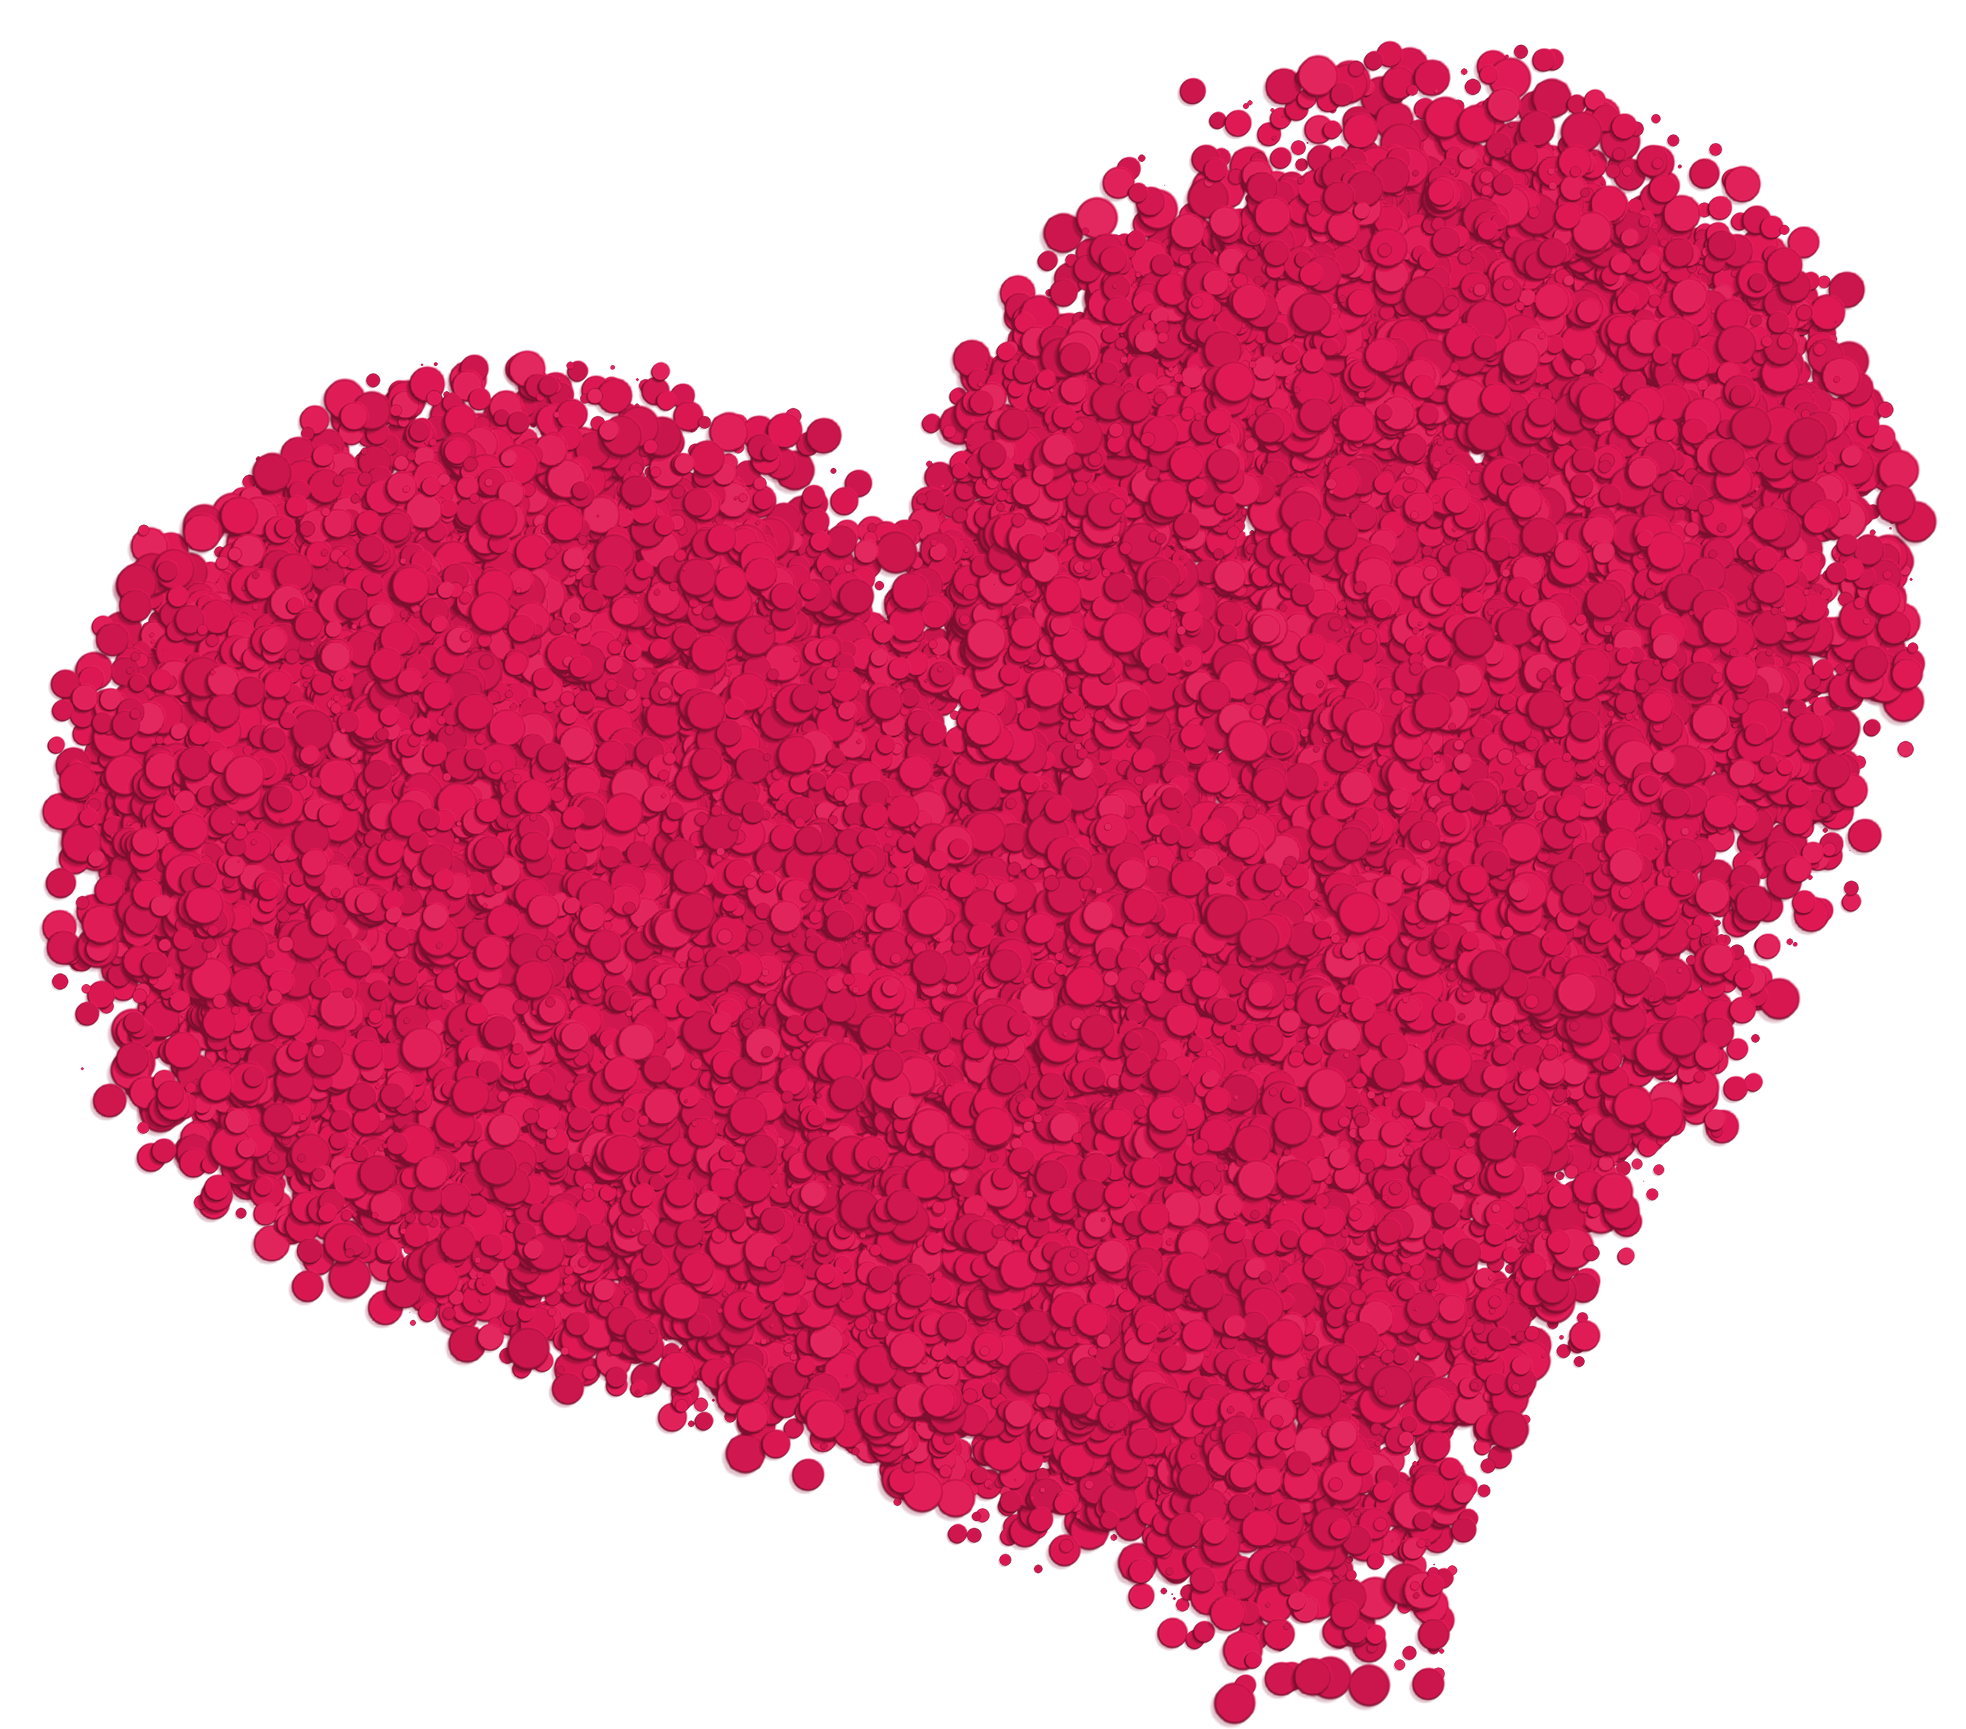 Hearts clipart winter. Large deco heart png